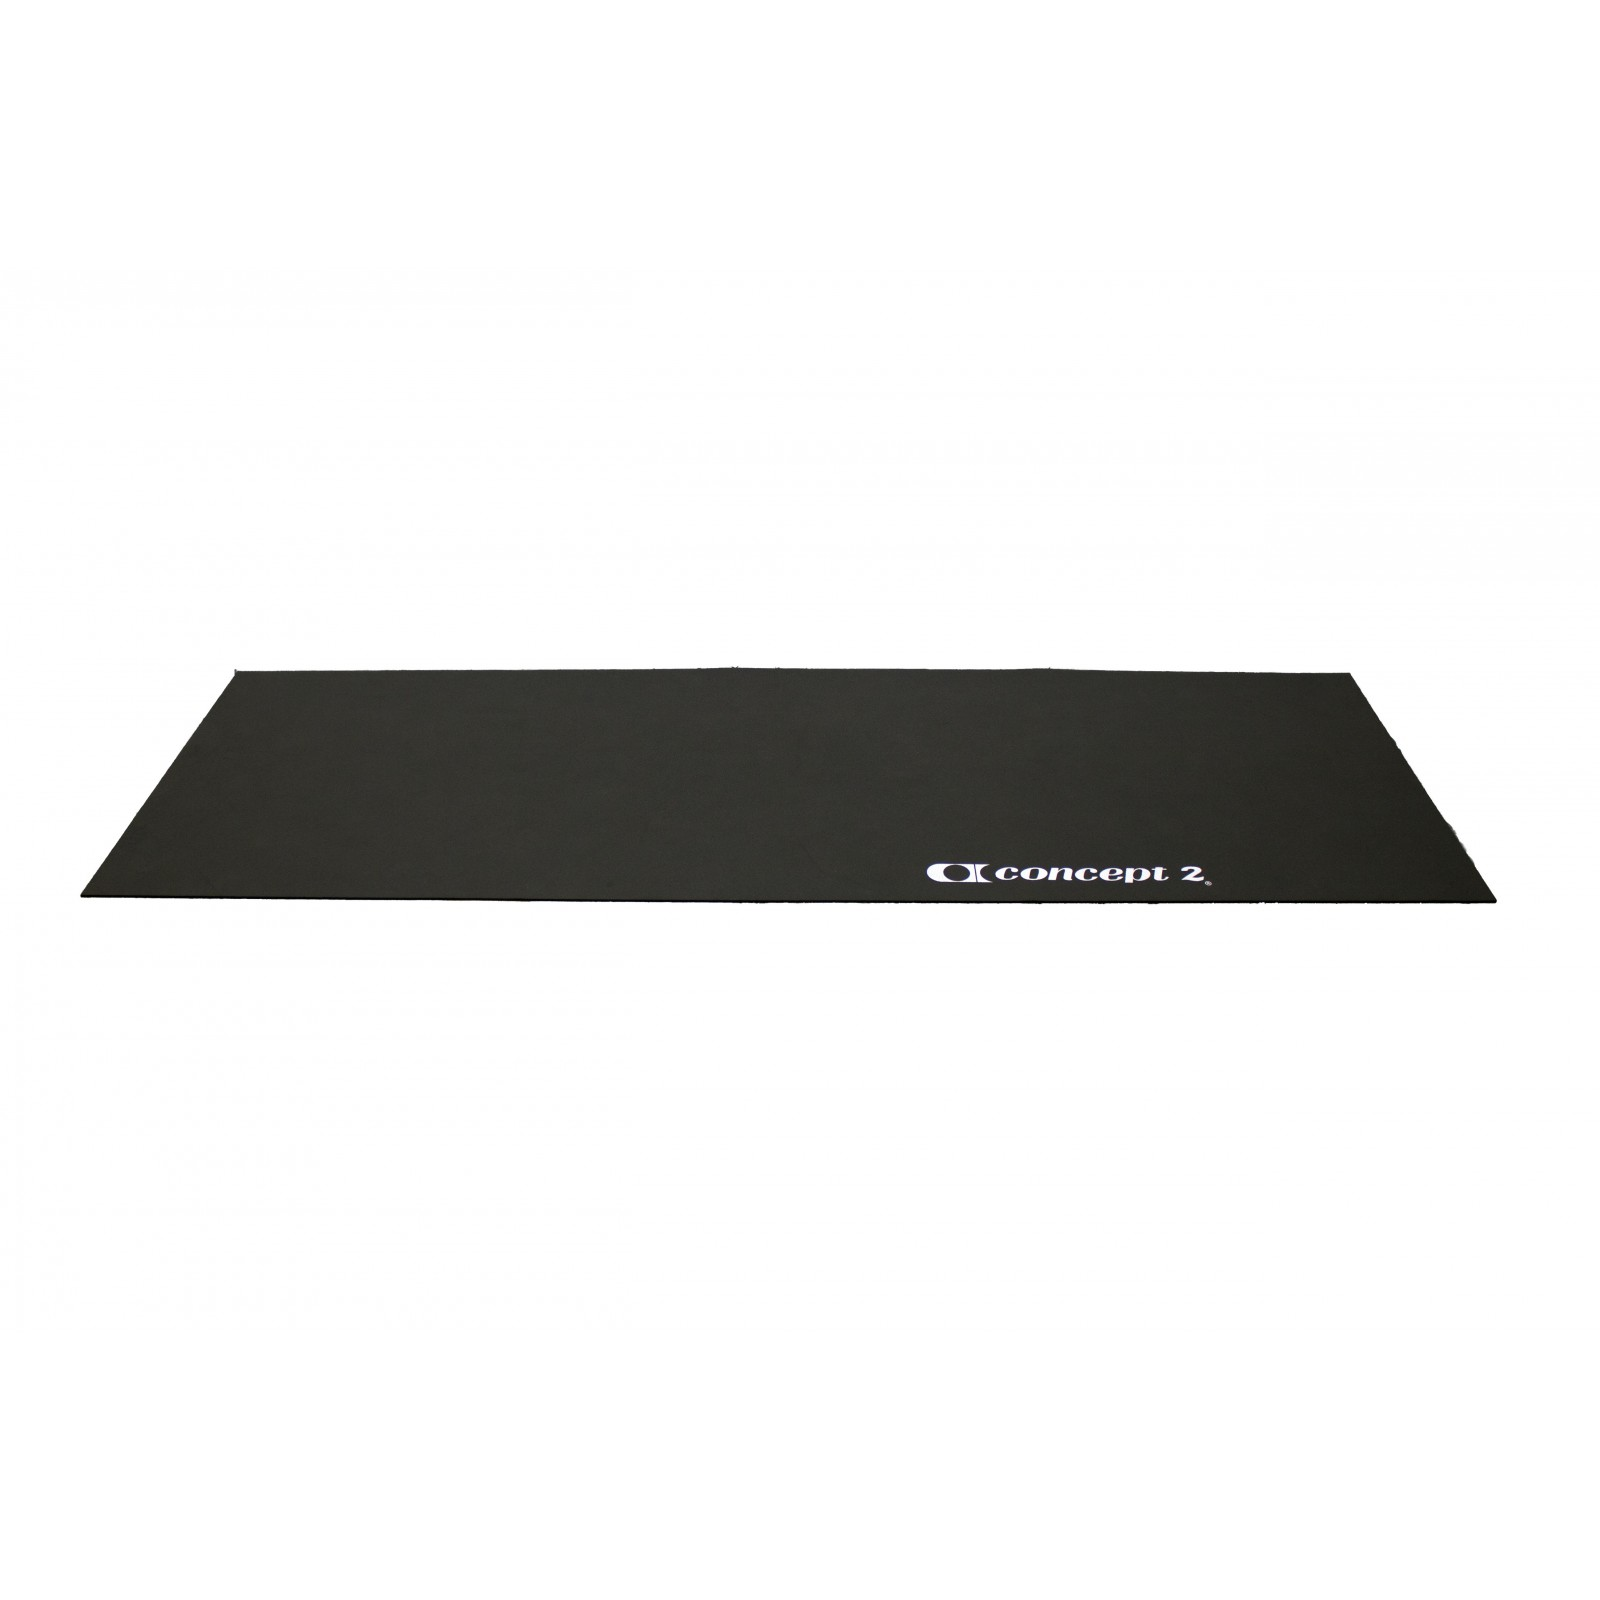 Concept2 Floor Mat Black Buy With 66 Customer Ratings